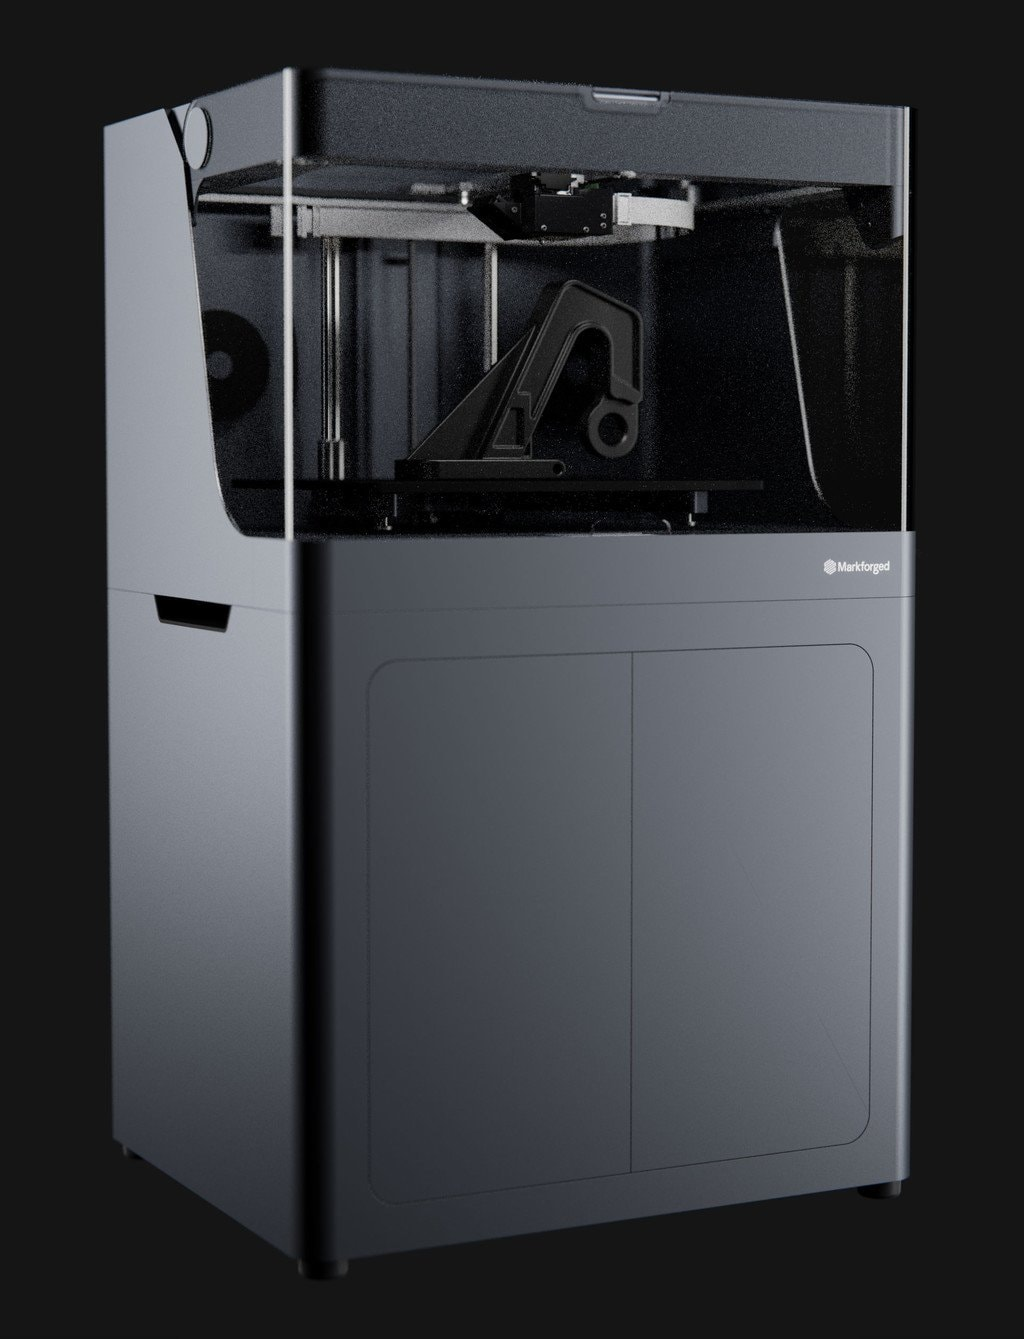 Markforged X5 Industrial Printer